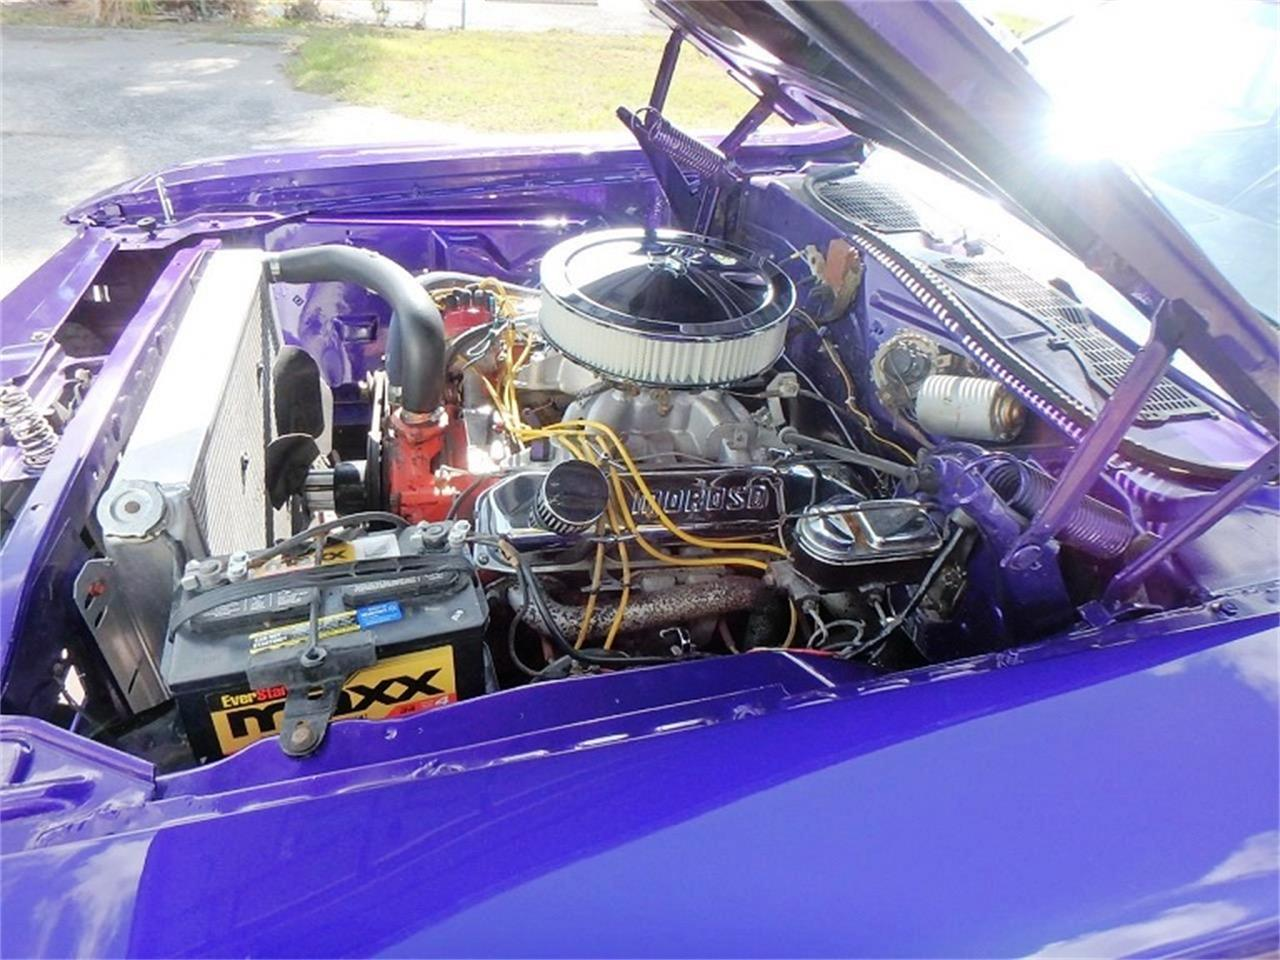 Large Picture of 1972 Dodge Challenger located in POMPANO BEACH Florida - $29,500.00 - PVNR